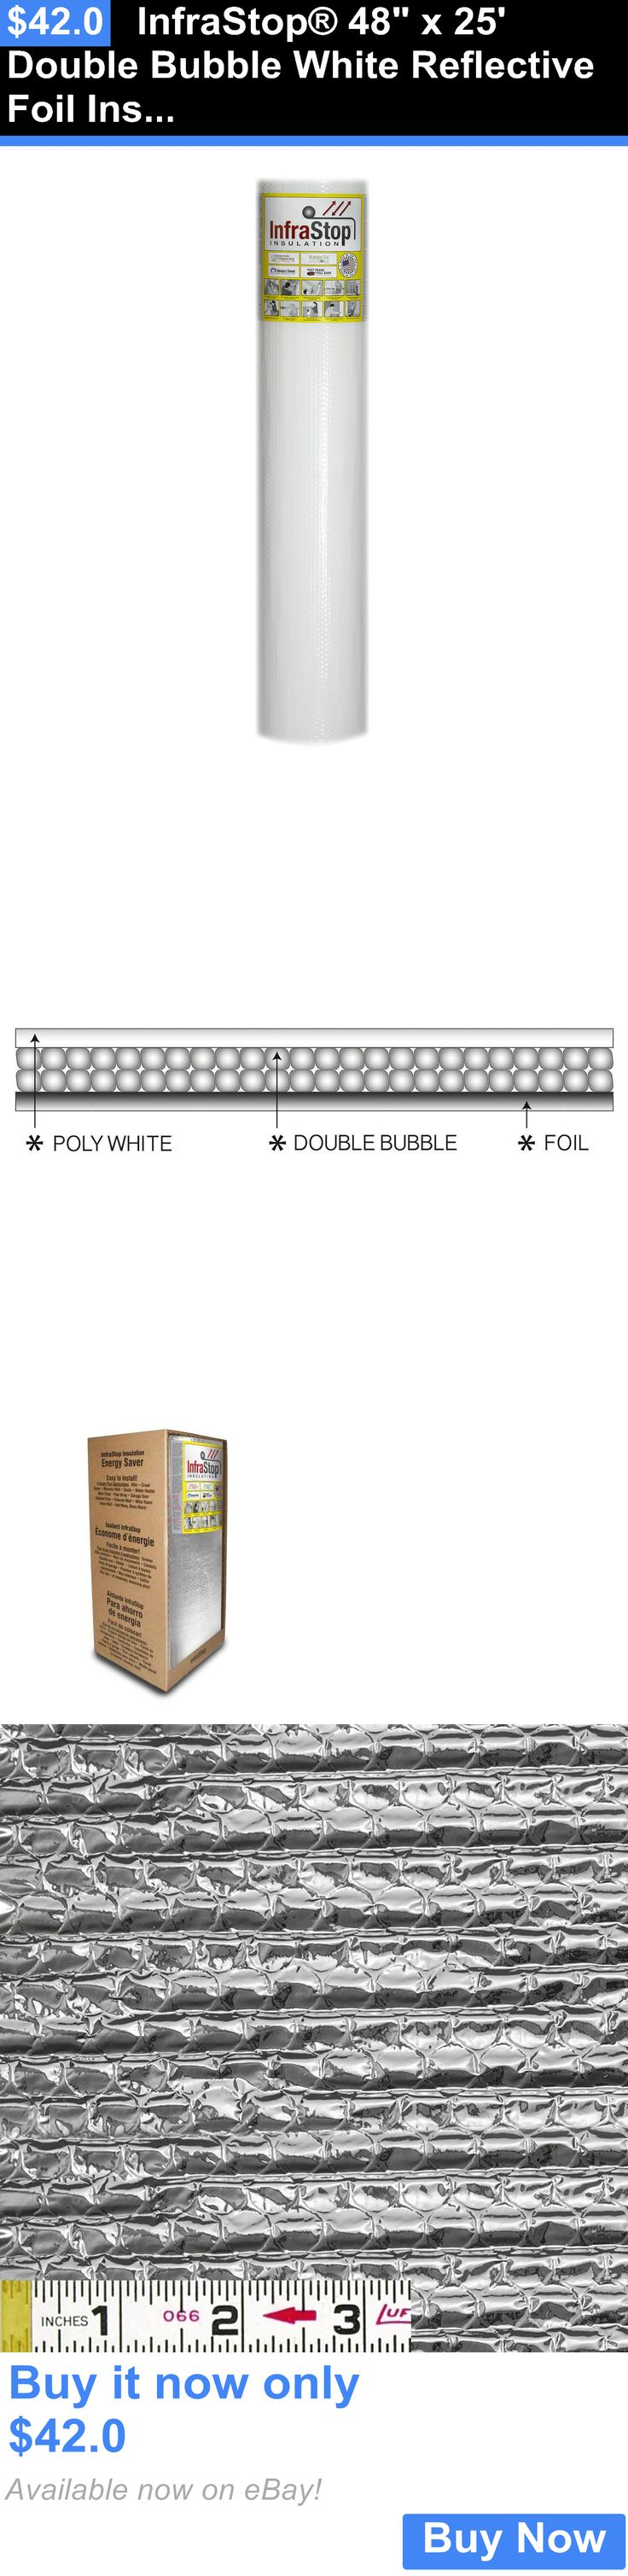 materials: Infrastop® 48 X 25 Double Bubble White Reflective Foil Insulation BUY IT NOW ONLY: $42.0